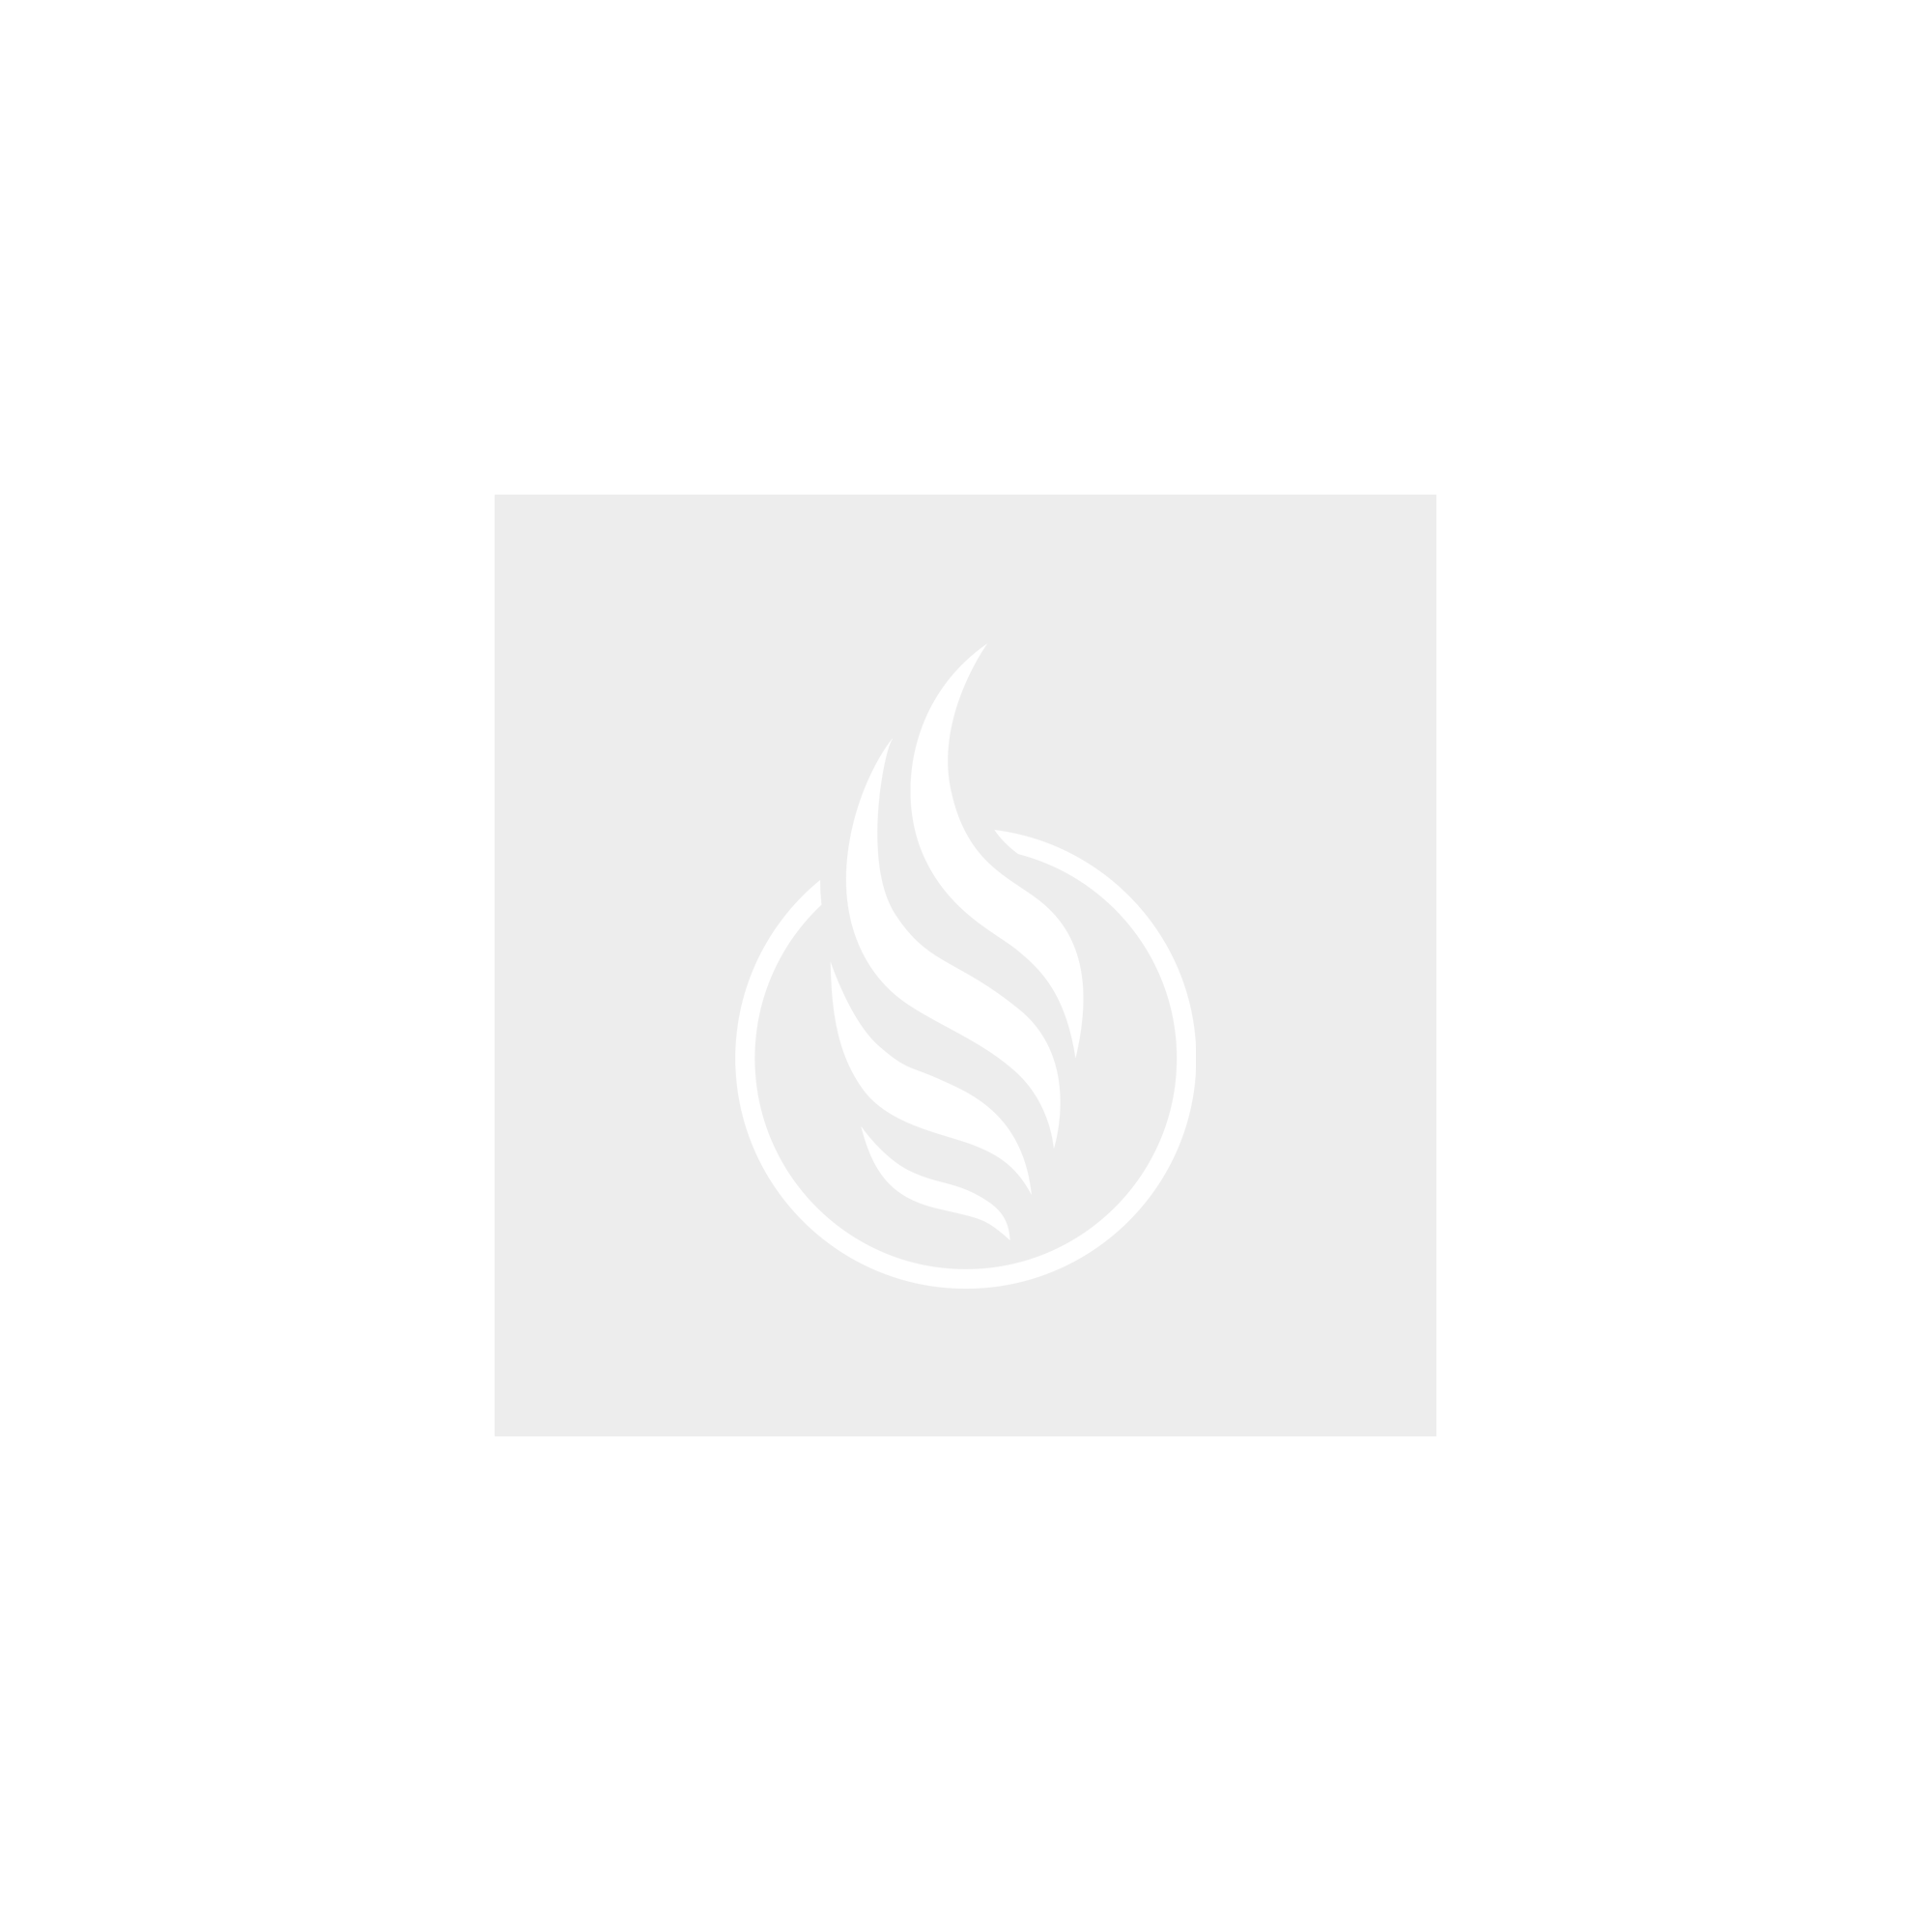 Kiwi Cool E-Liquid Shortfill 50ml